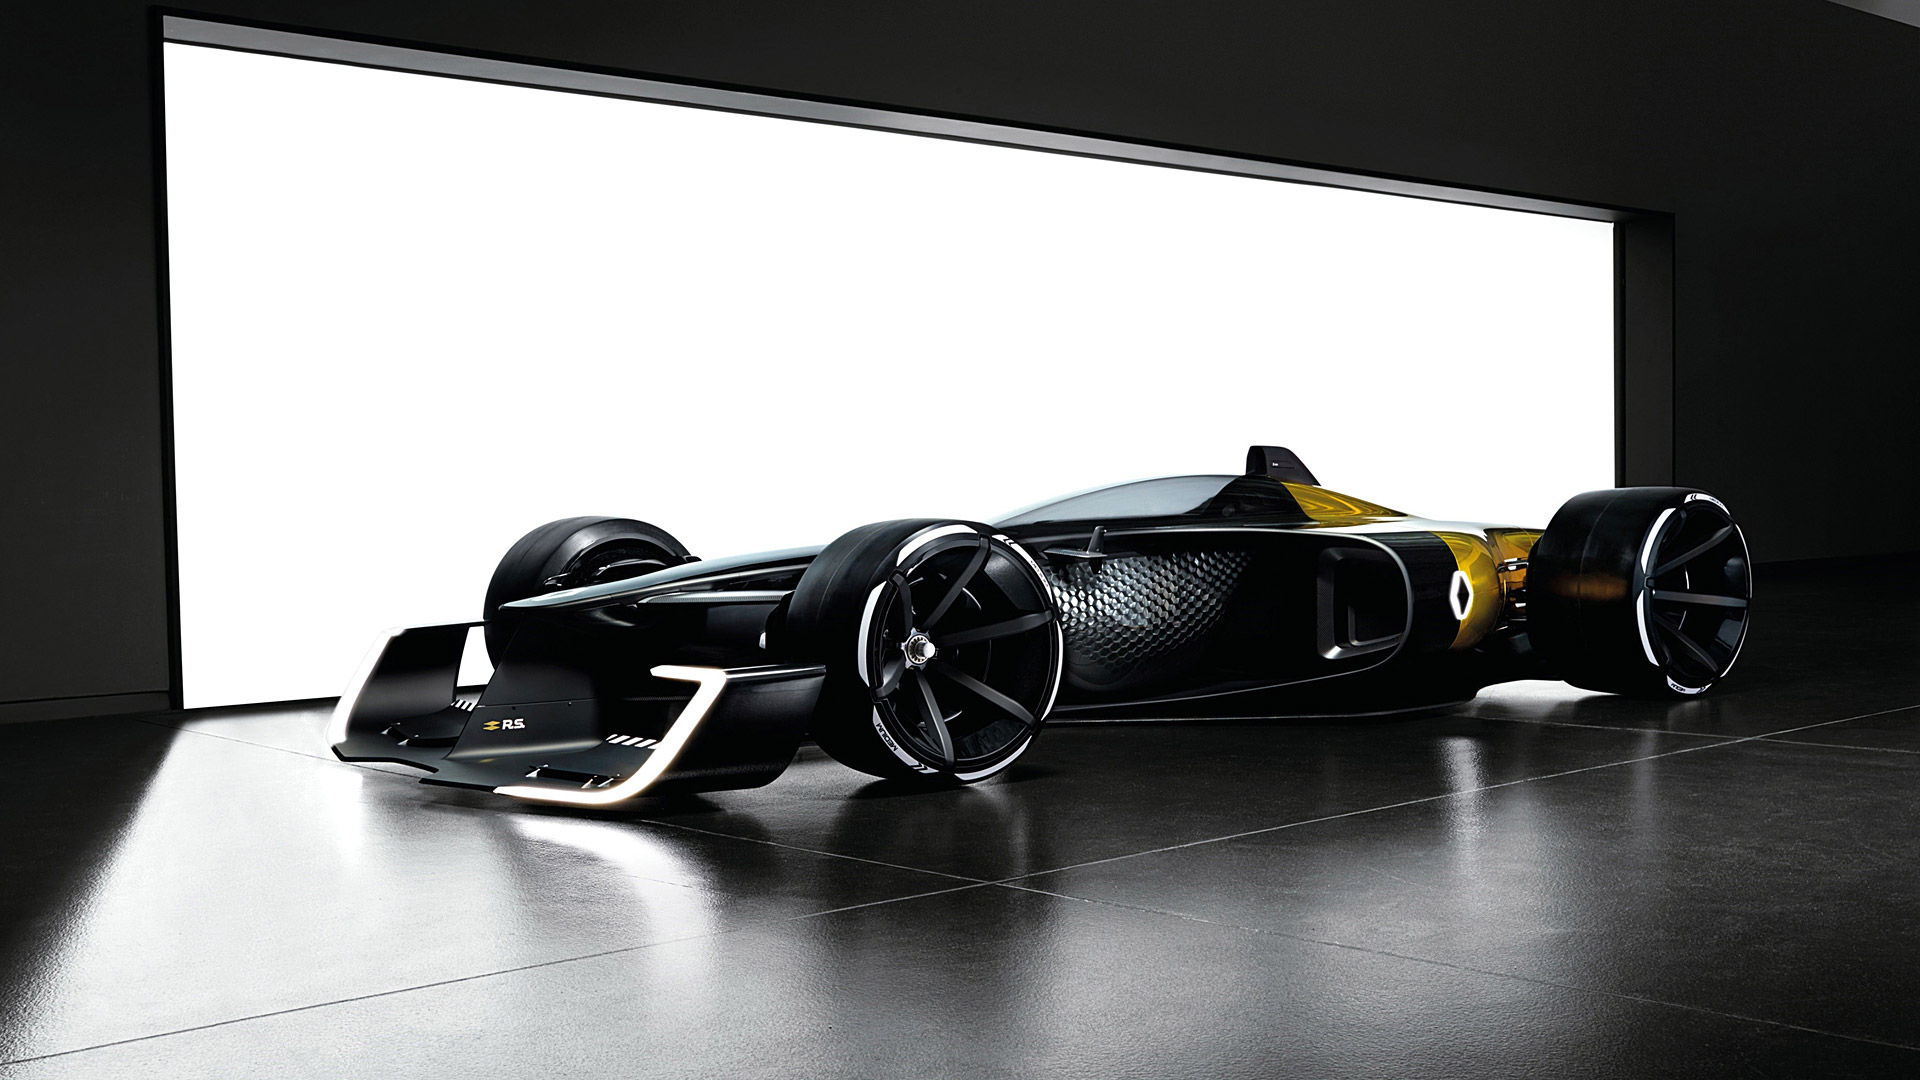 2017 Renault RS 2027 Vision Concept